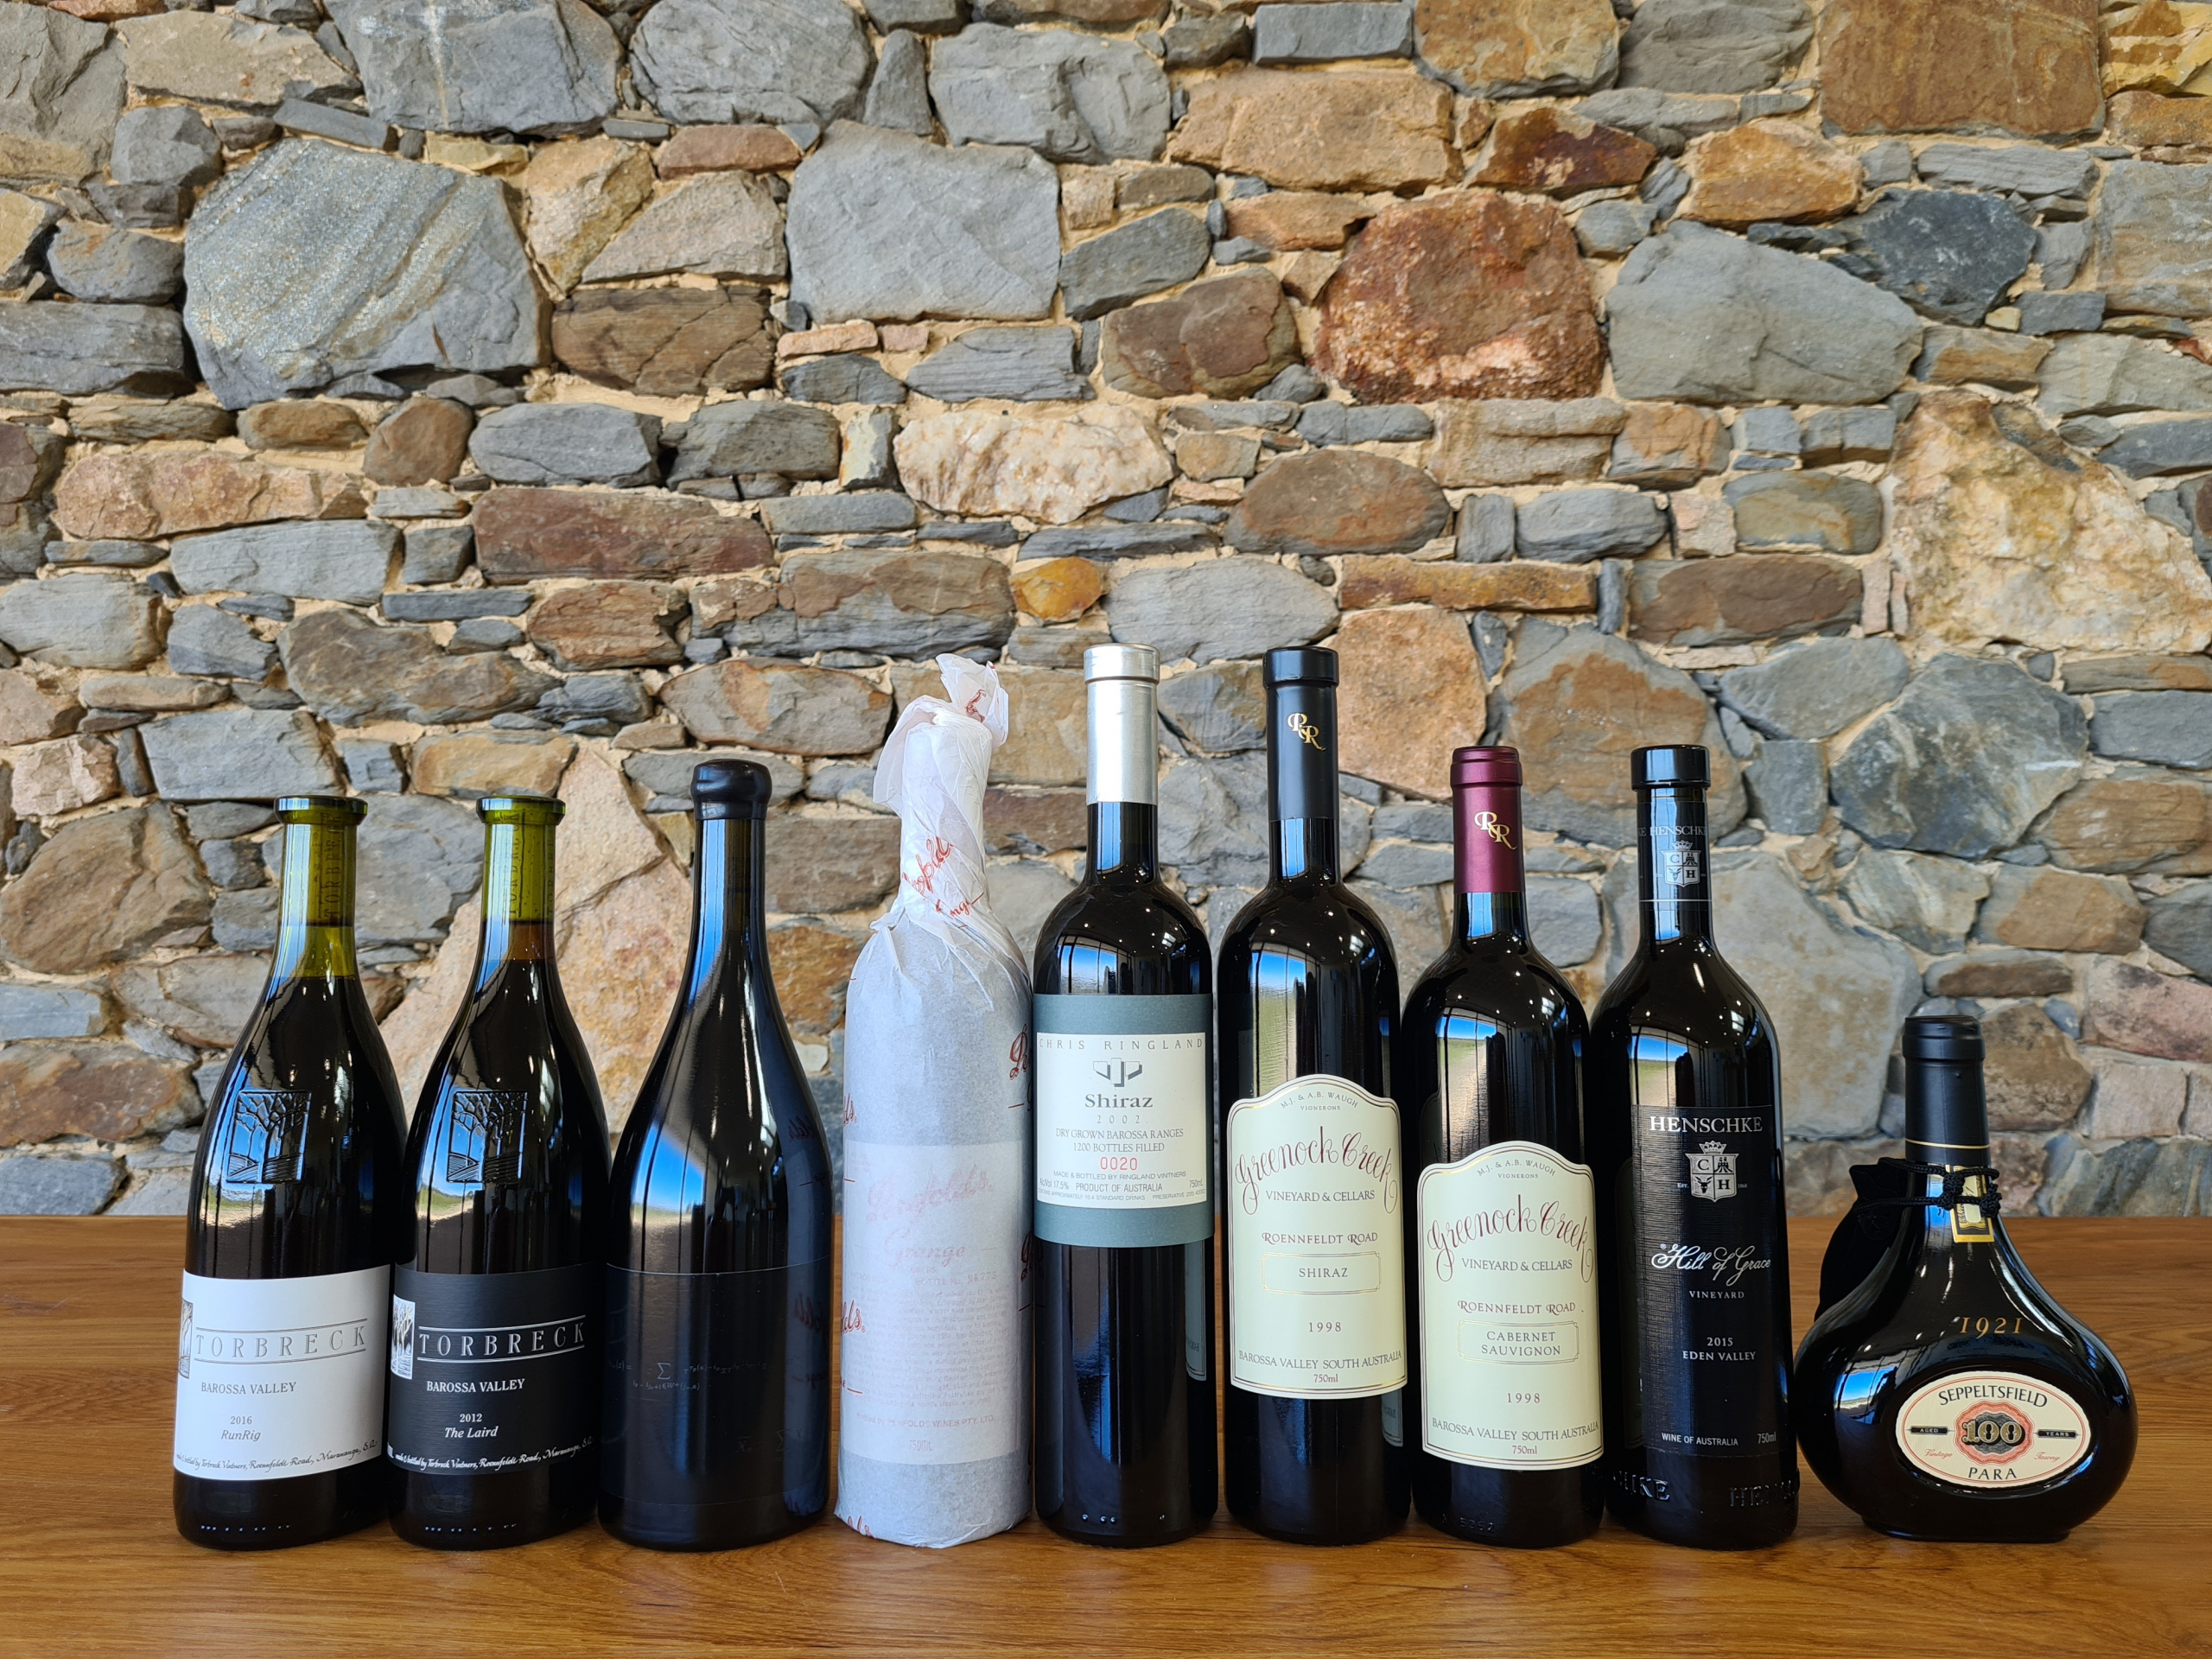 9 bottles of 100 point Barossa wine sitting on a wooden table in front of a stone wall